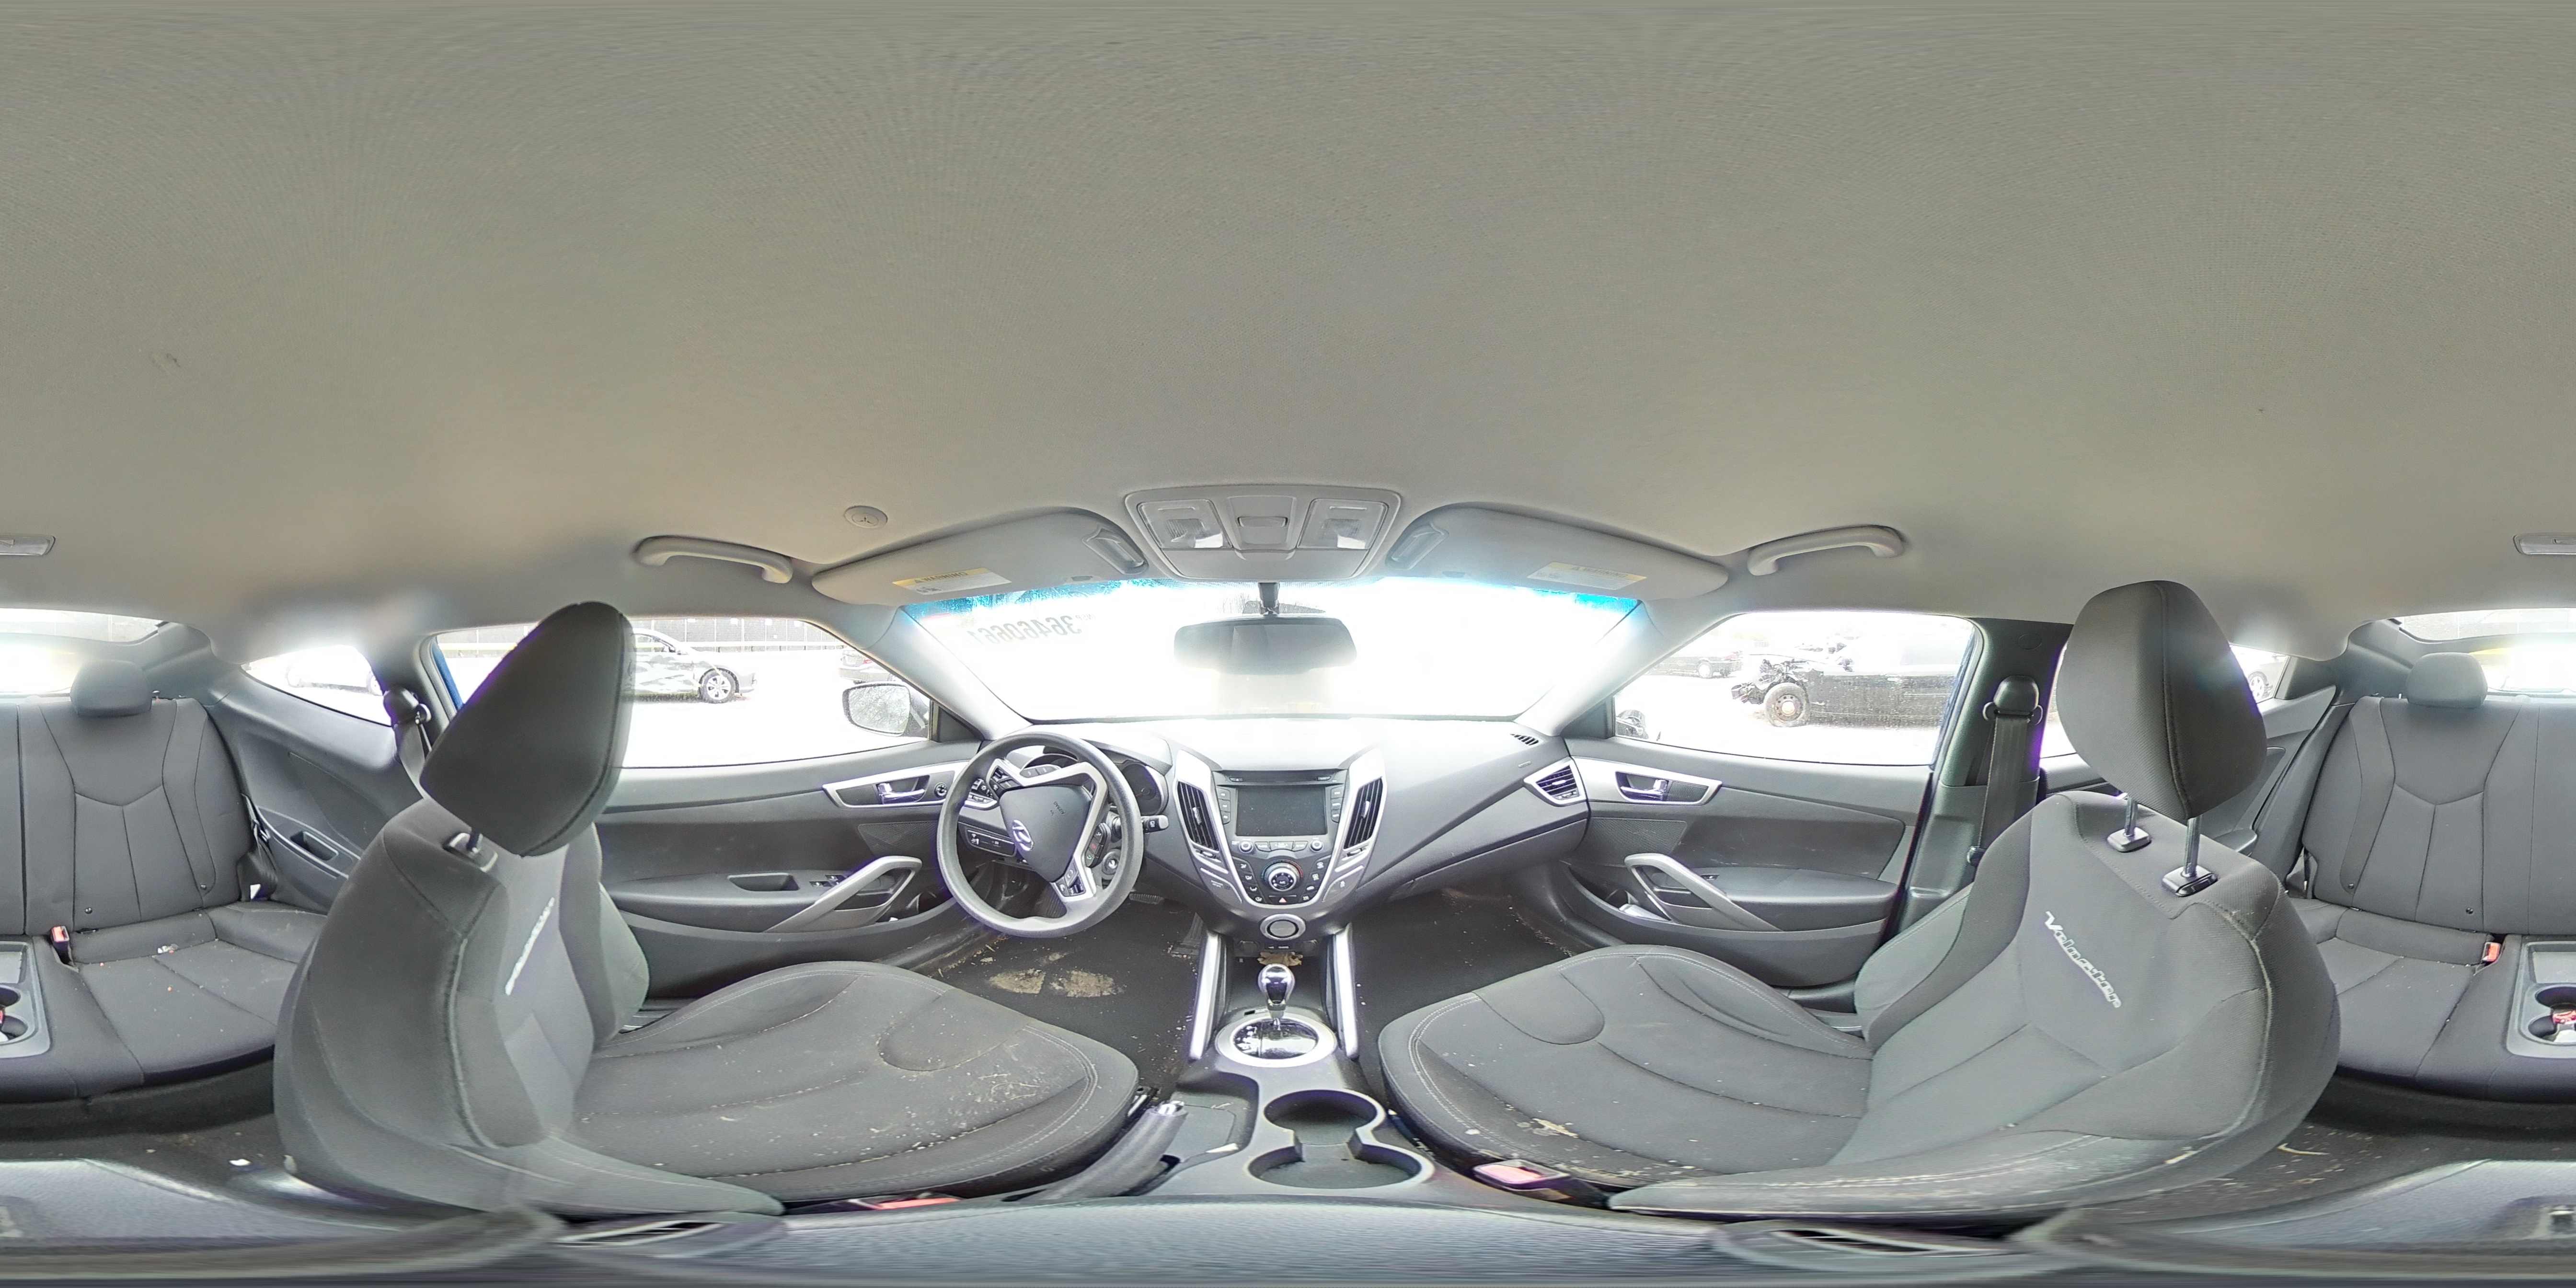 2012 HYUNDAI VELOSTER - Other View